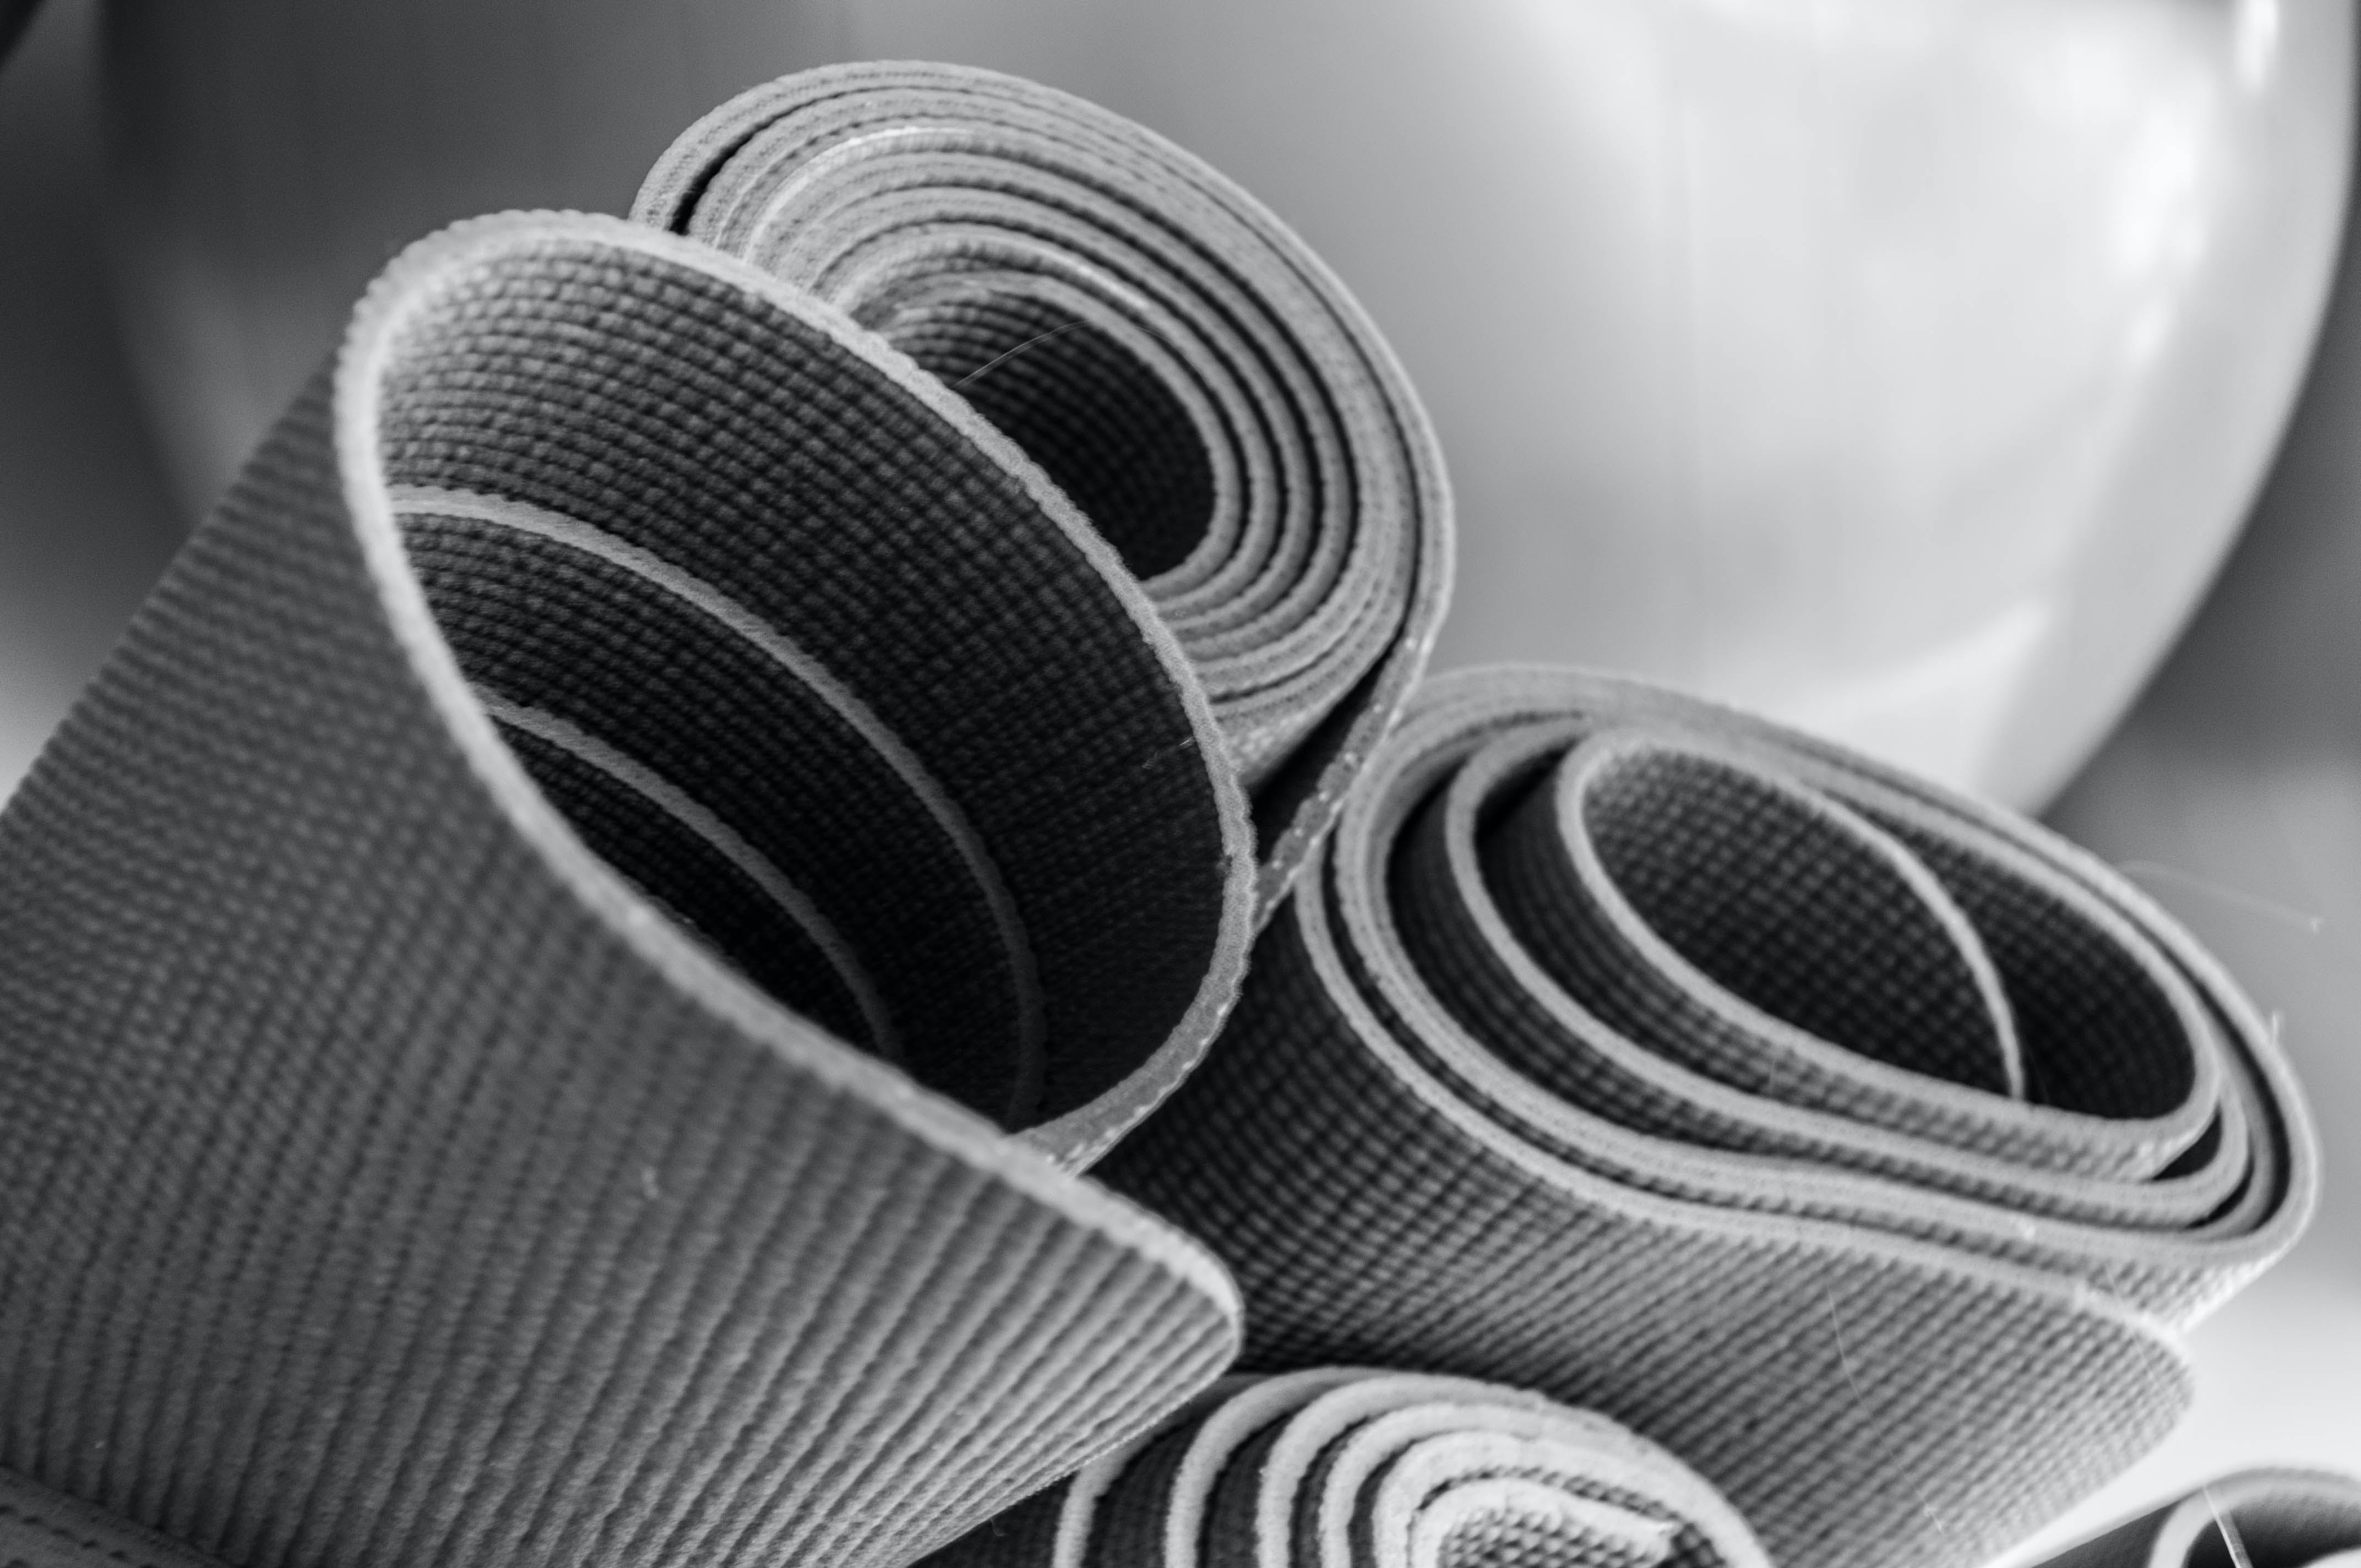 Free stock photo of exercise equipment, gym, rubber mats, yoga